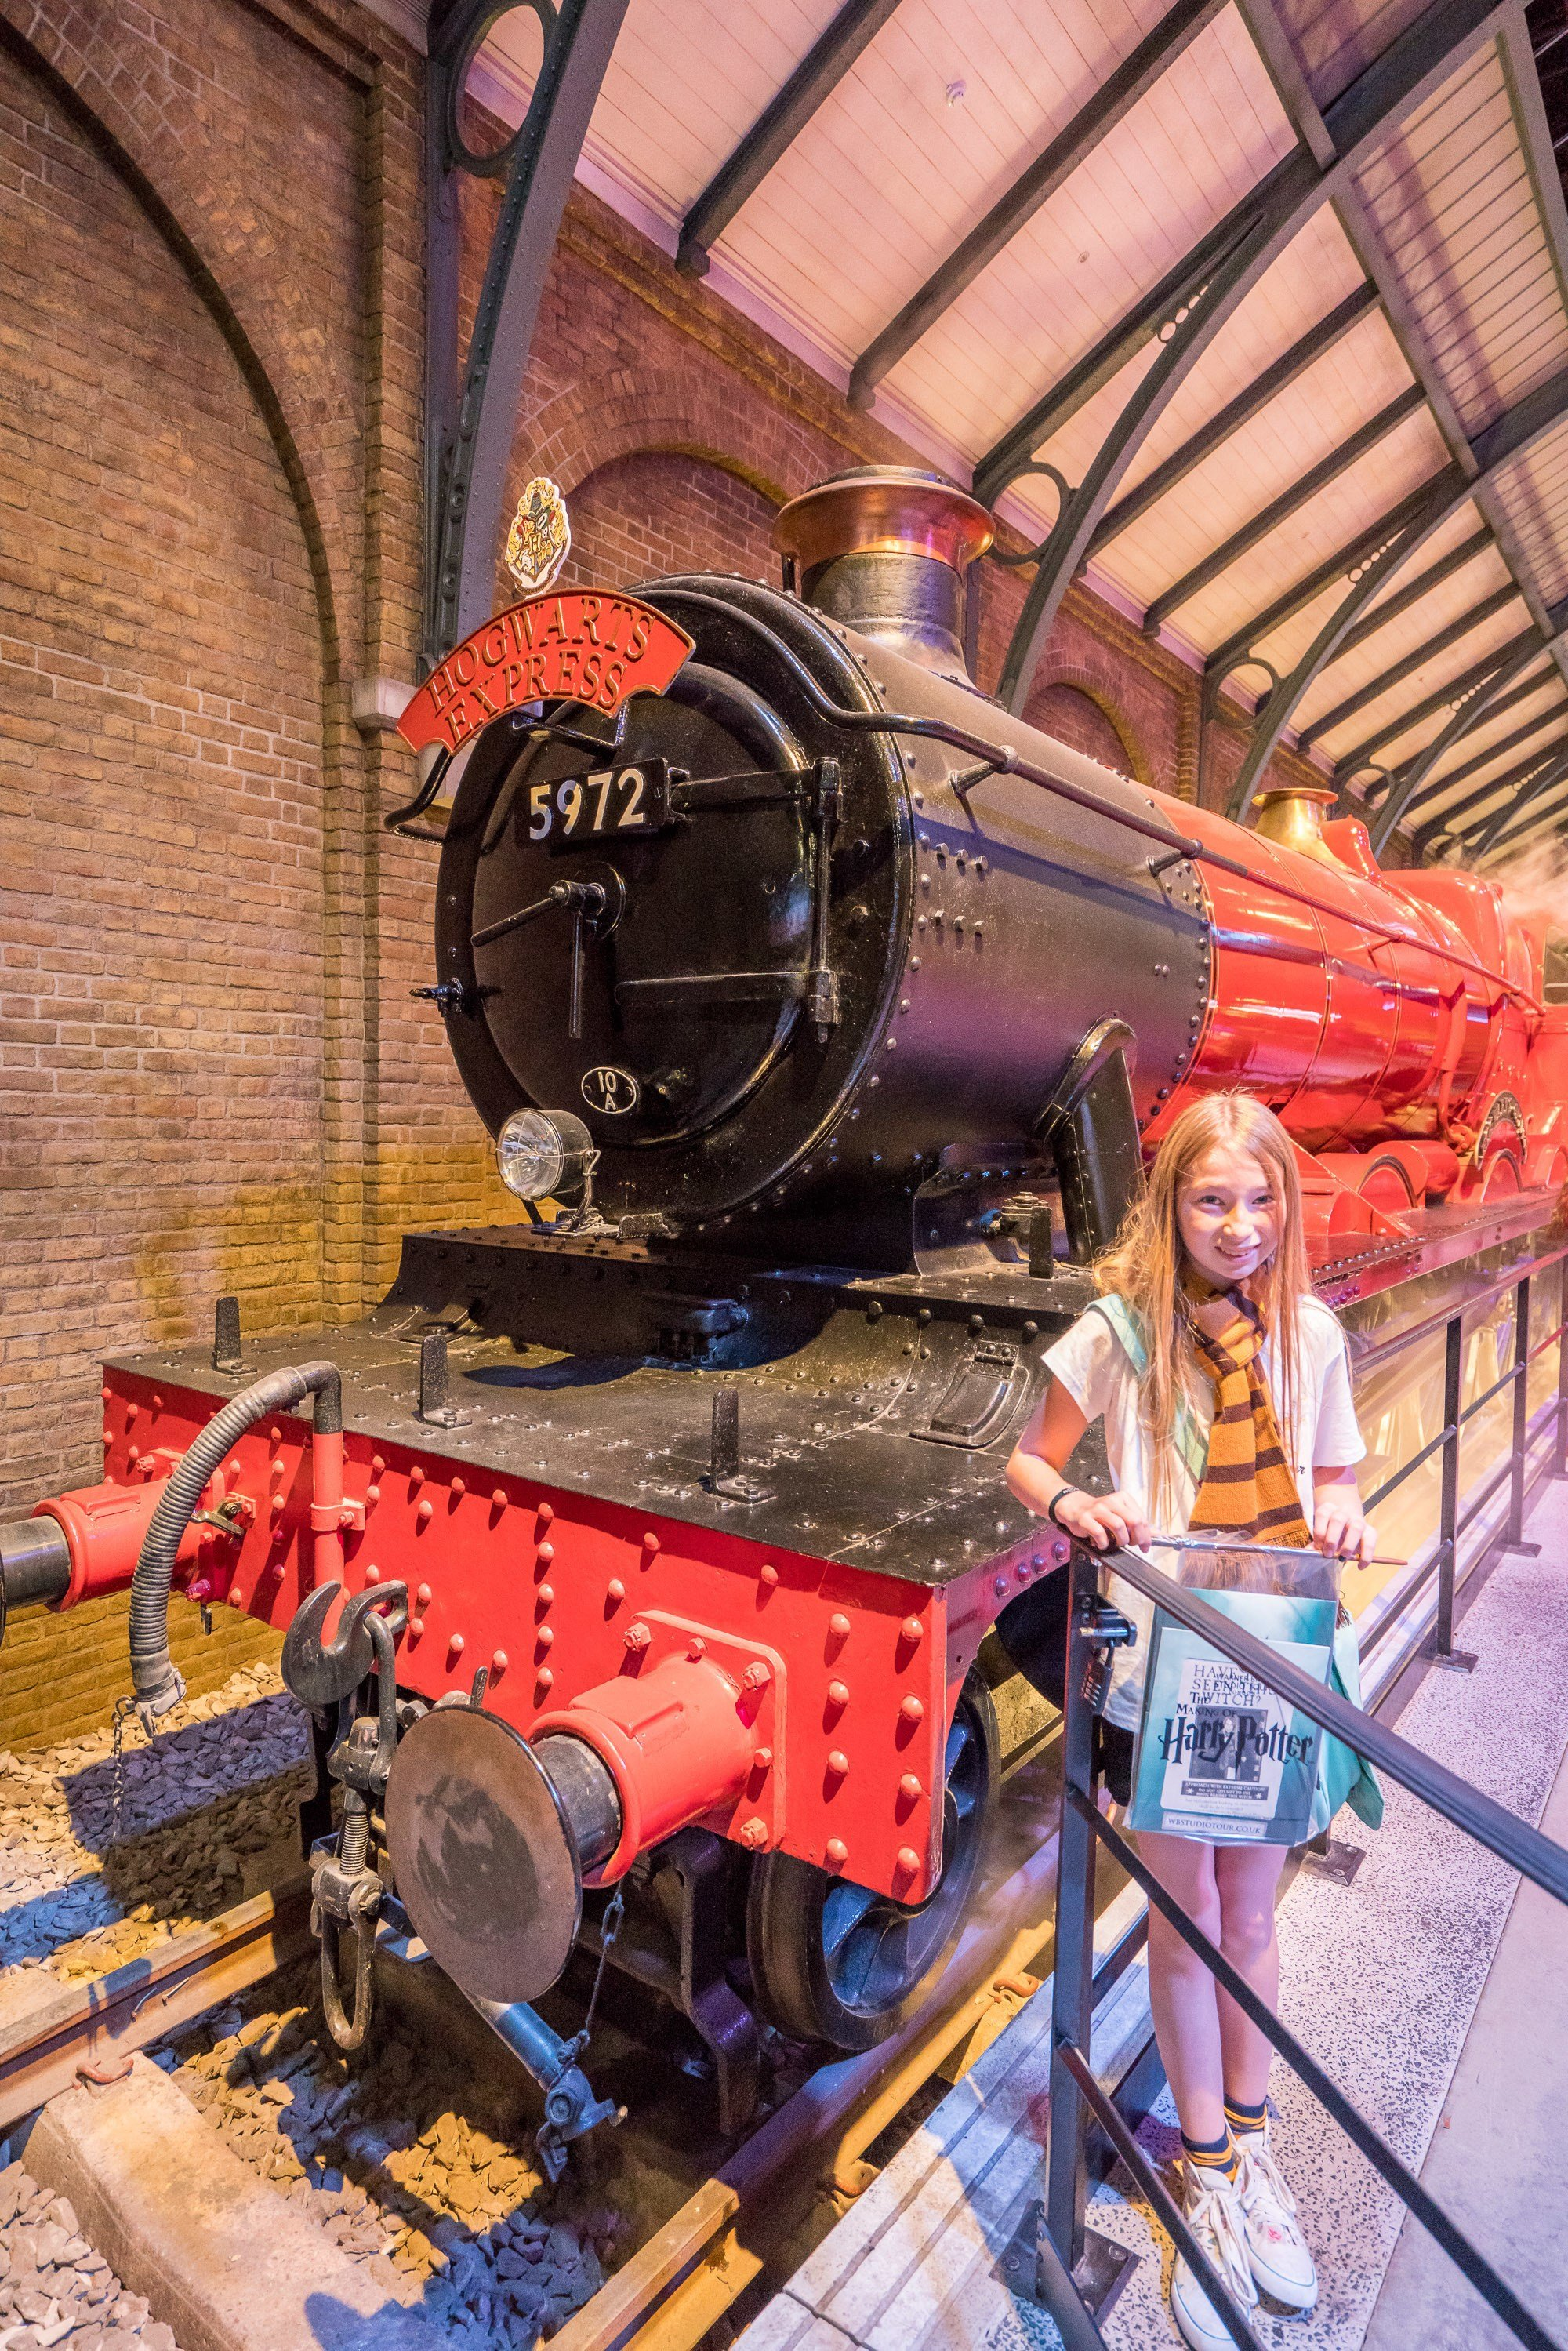 The Hogwarts Express at Warner Bros. Studios London where they filmed the Harry Potter movies.